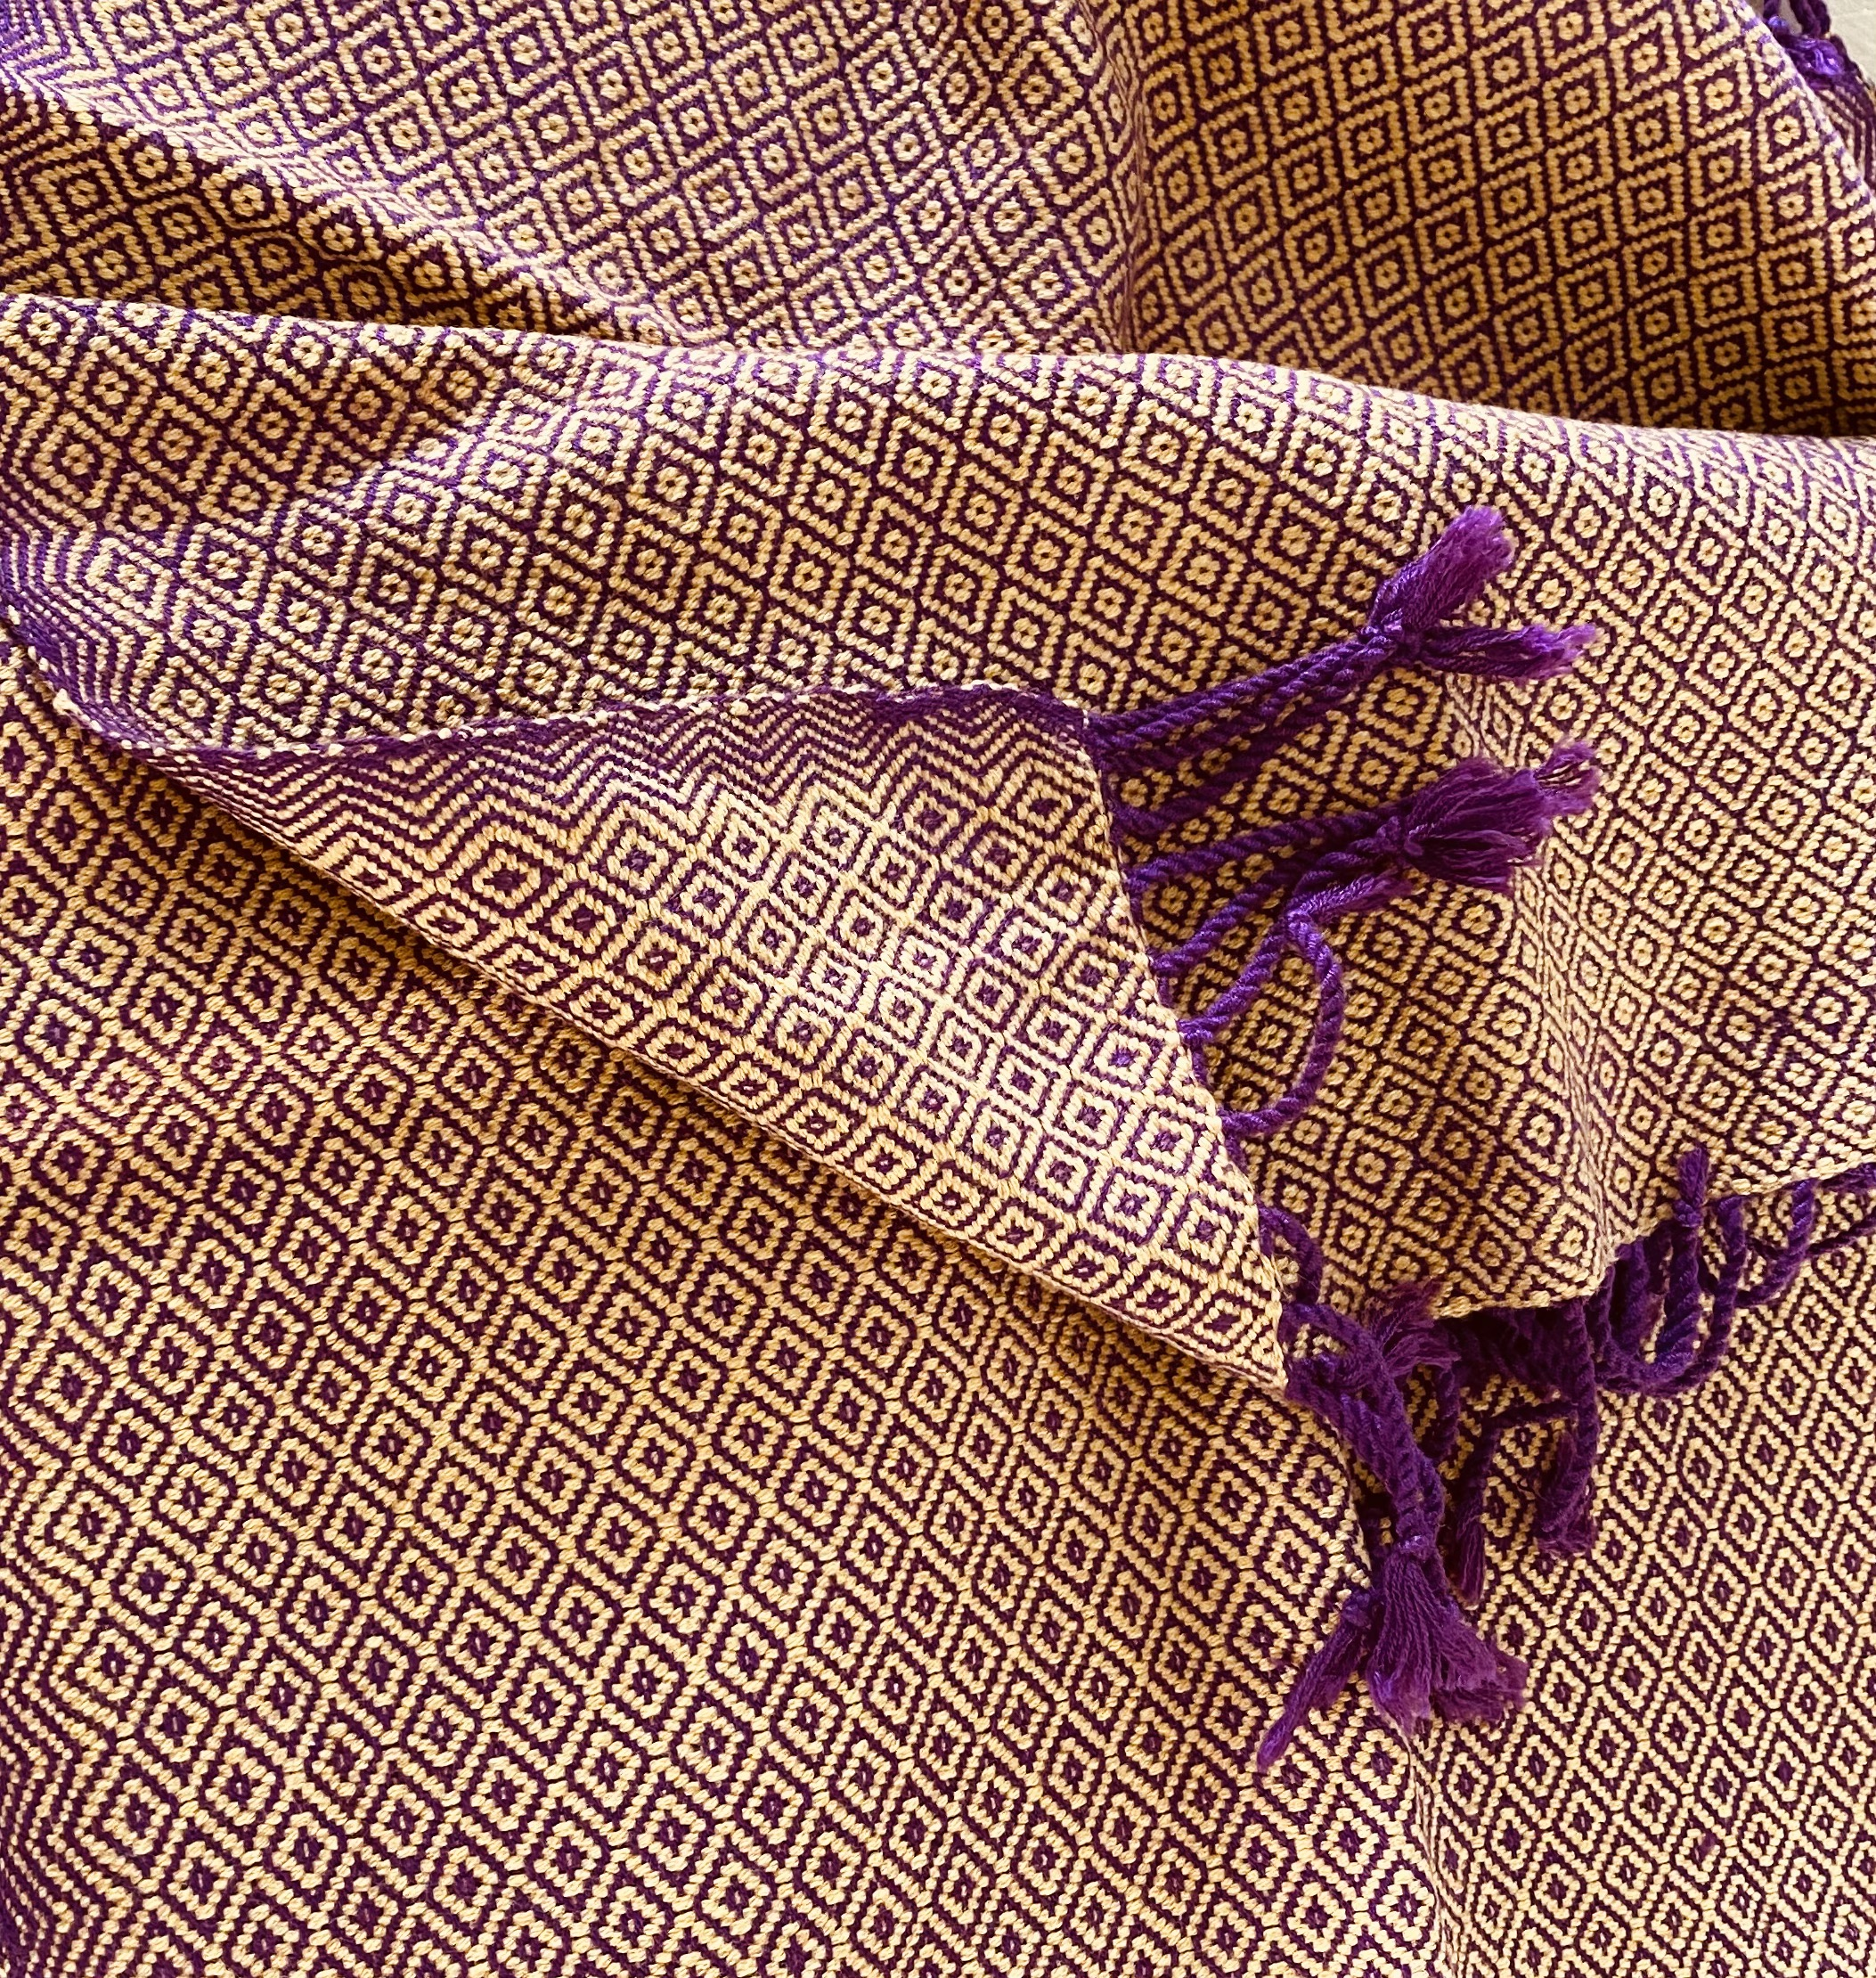 Purple and ocre scarf in diamant pattern